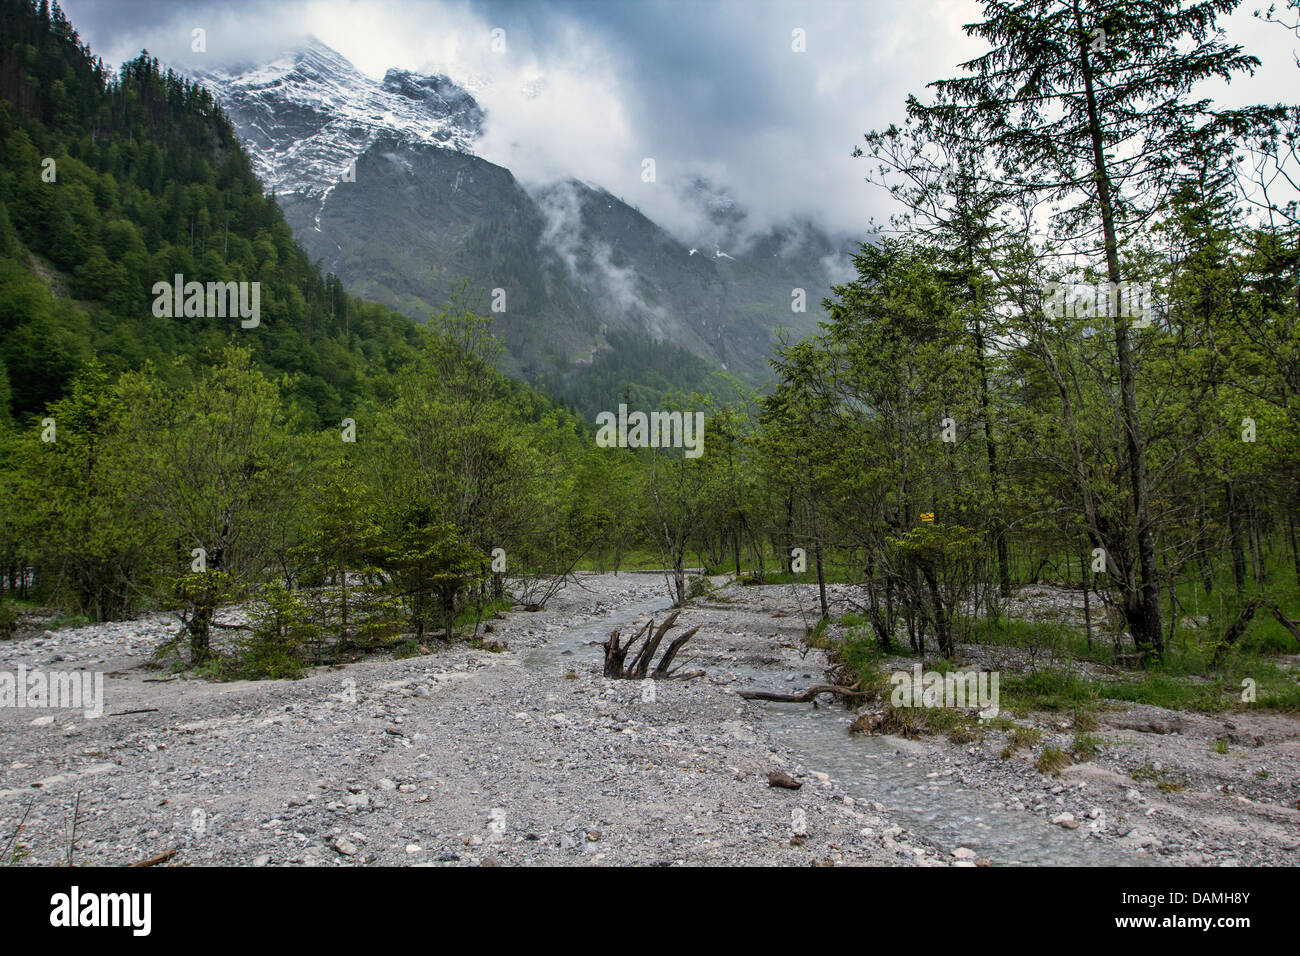 Eisbach, cone of debris with Watzmann in the background, Germany, Bavaria, Koenigssee - Stock Image